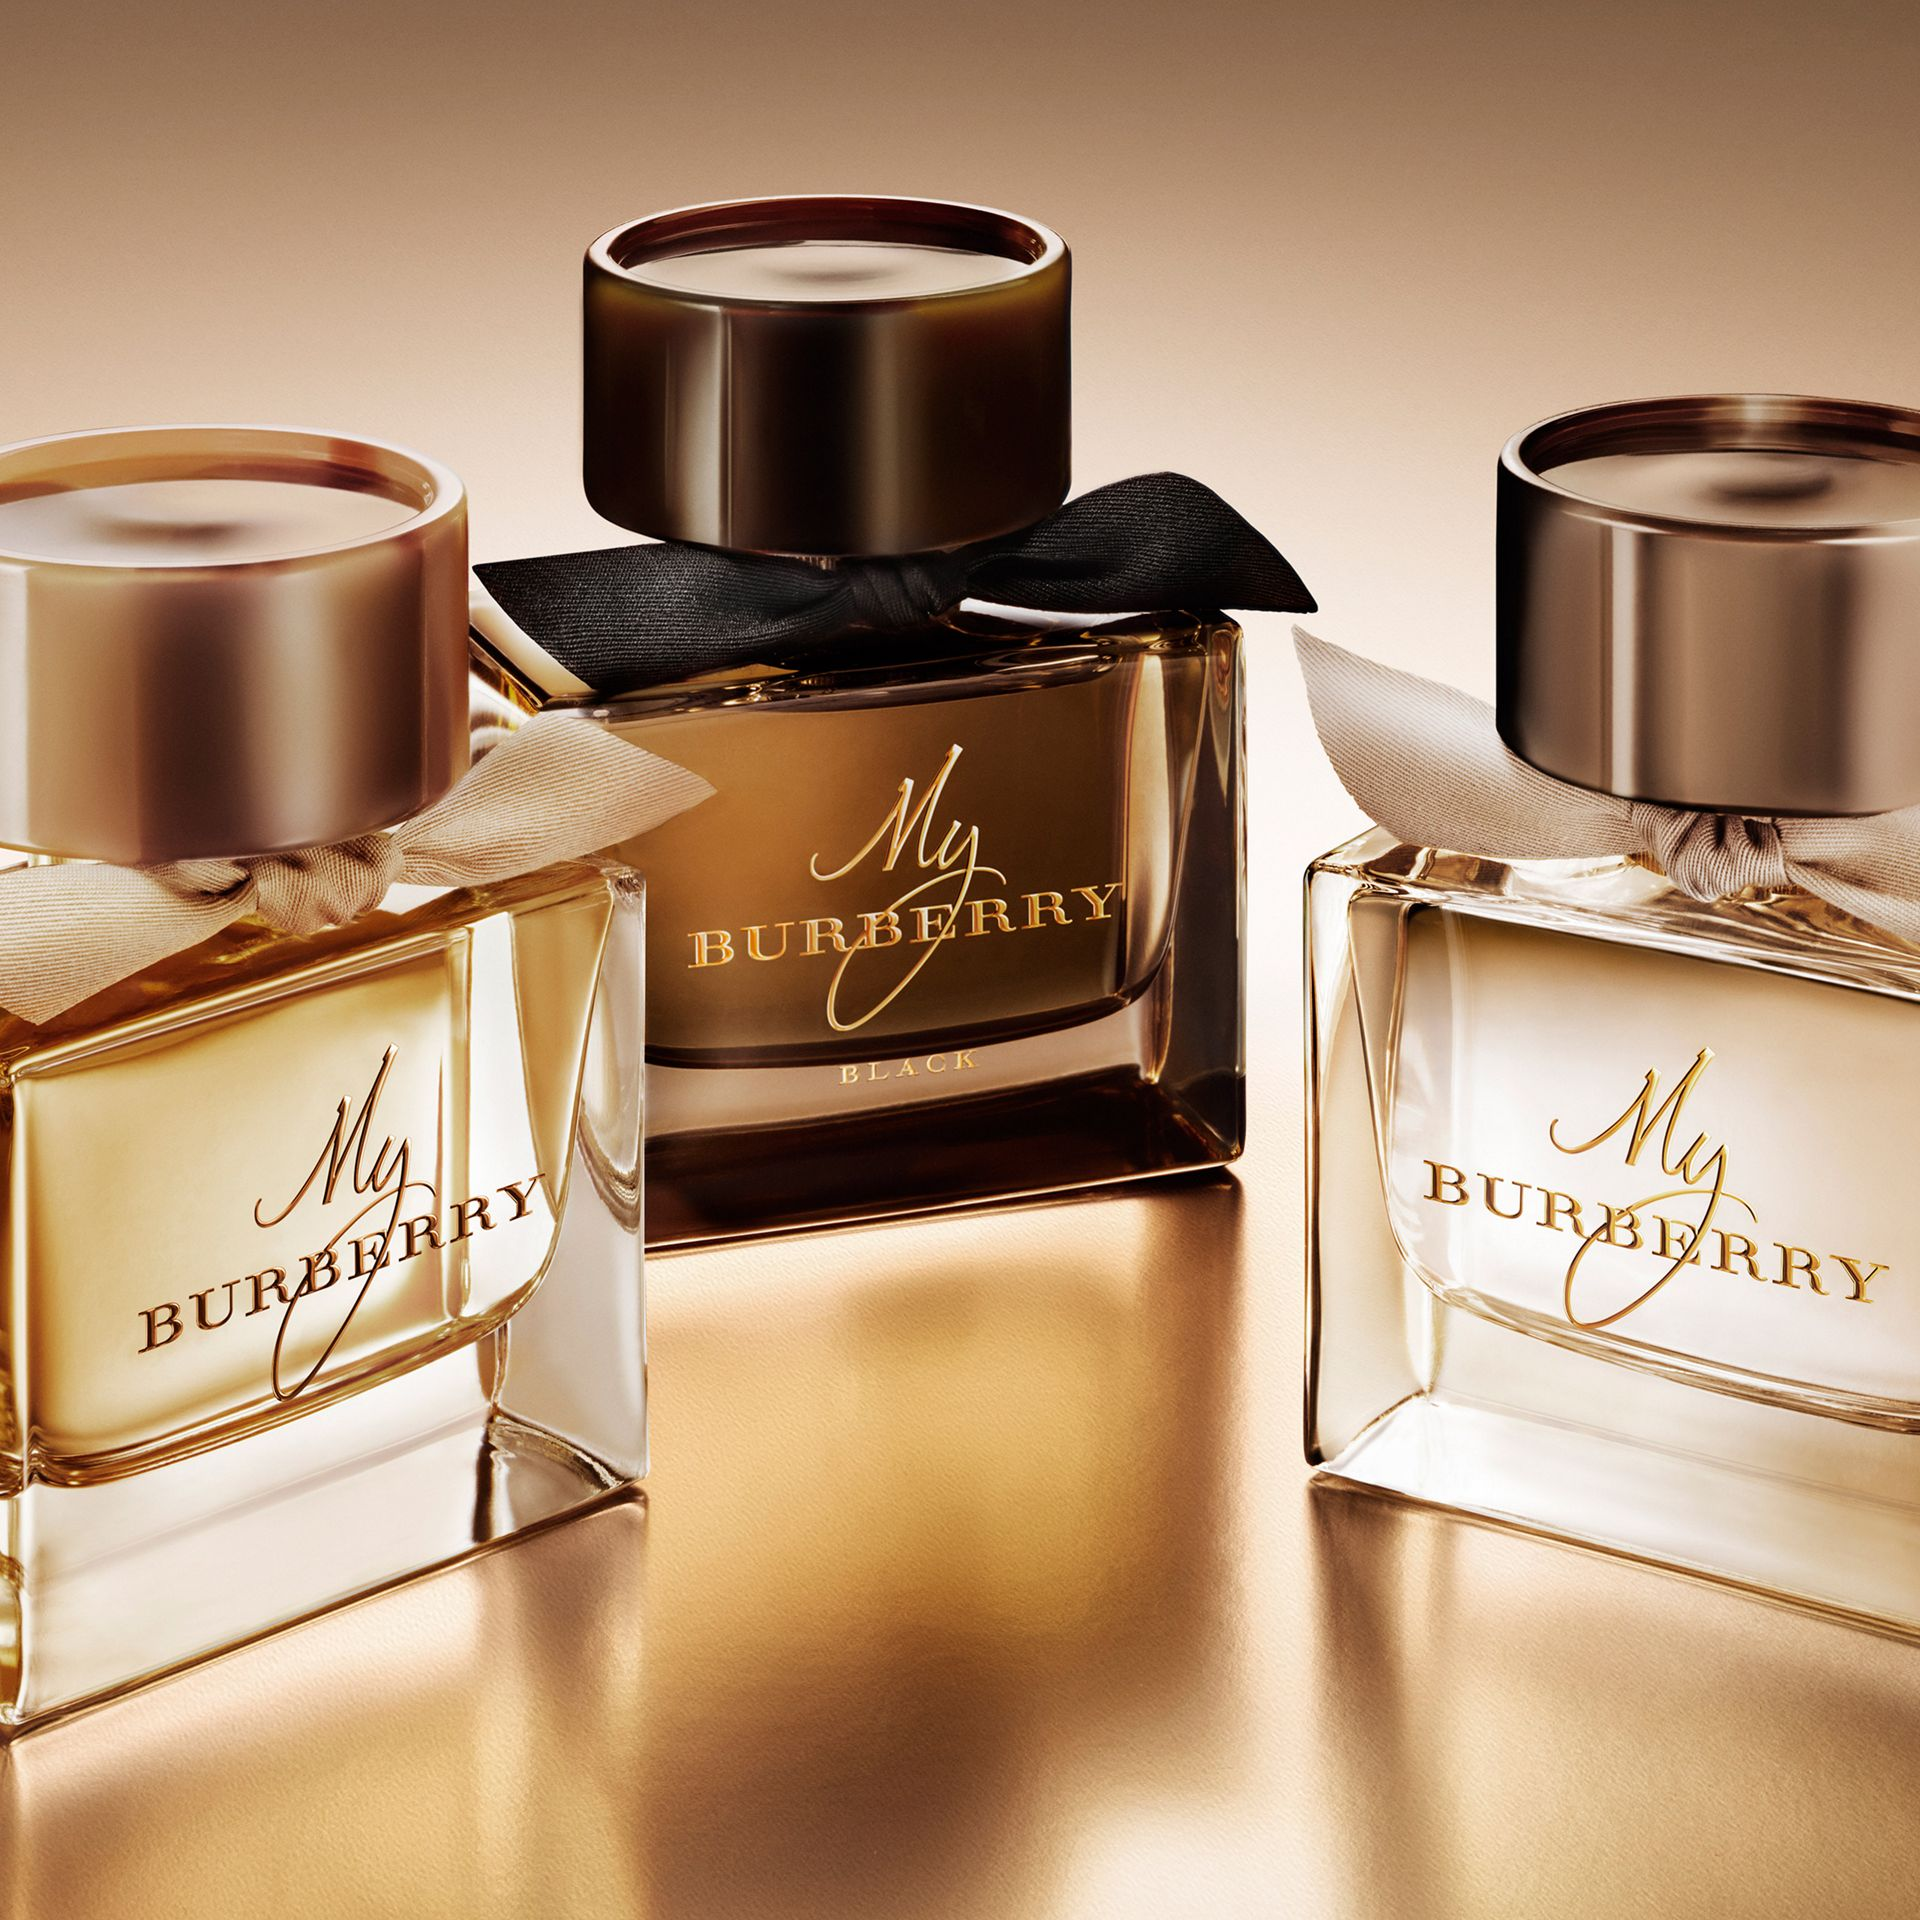 Аромат My Burberry Black, 30 мл (30ml) - Для женщин | Burberry - изображение 2